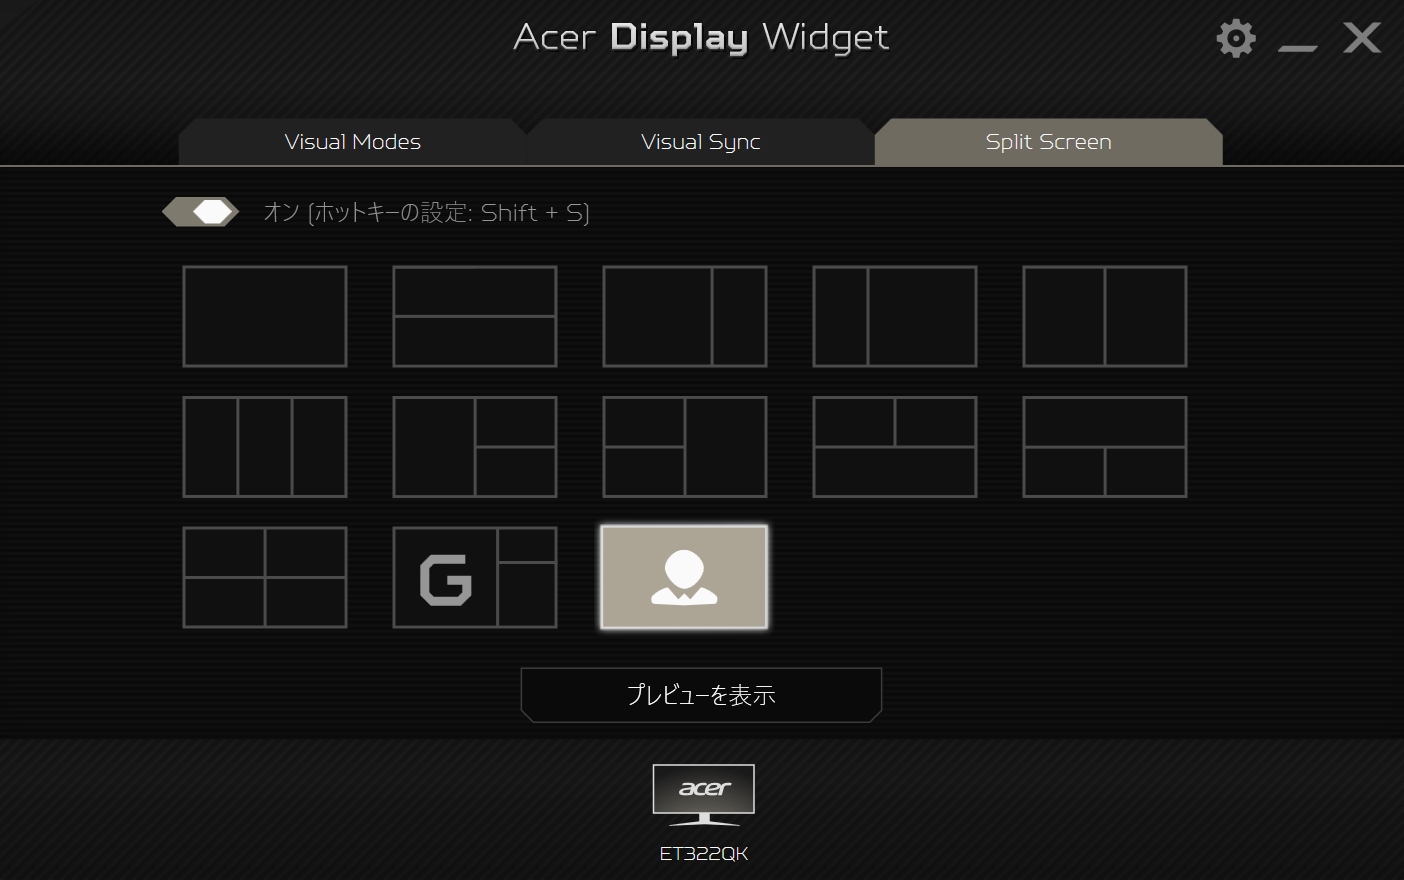 acer display widget split Screen